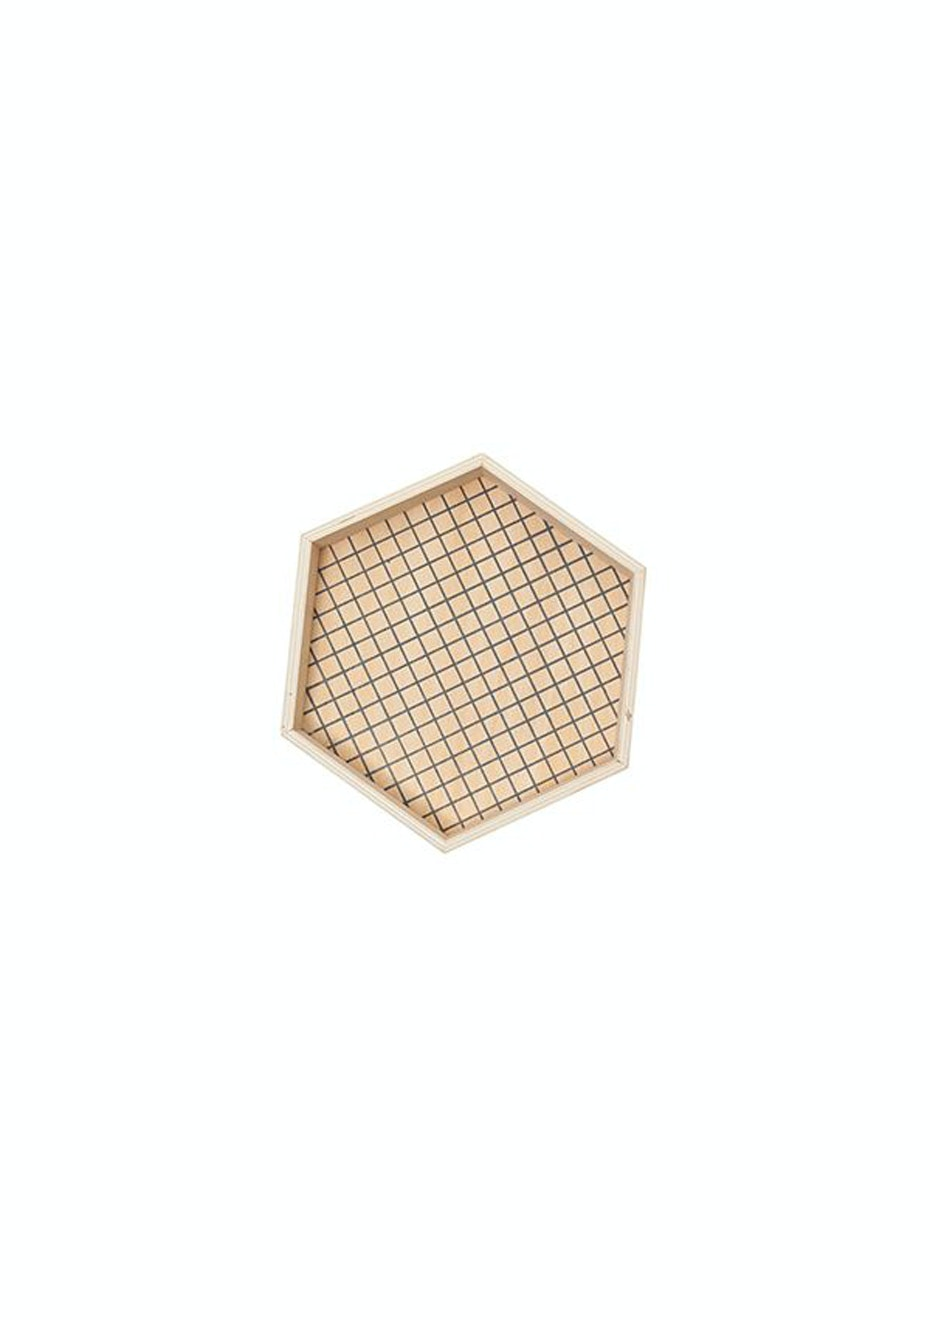 General Eclectic - Hex Wooden Tray - Medium